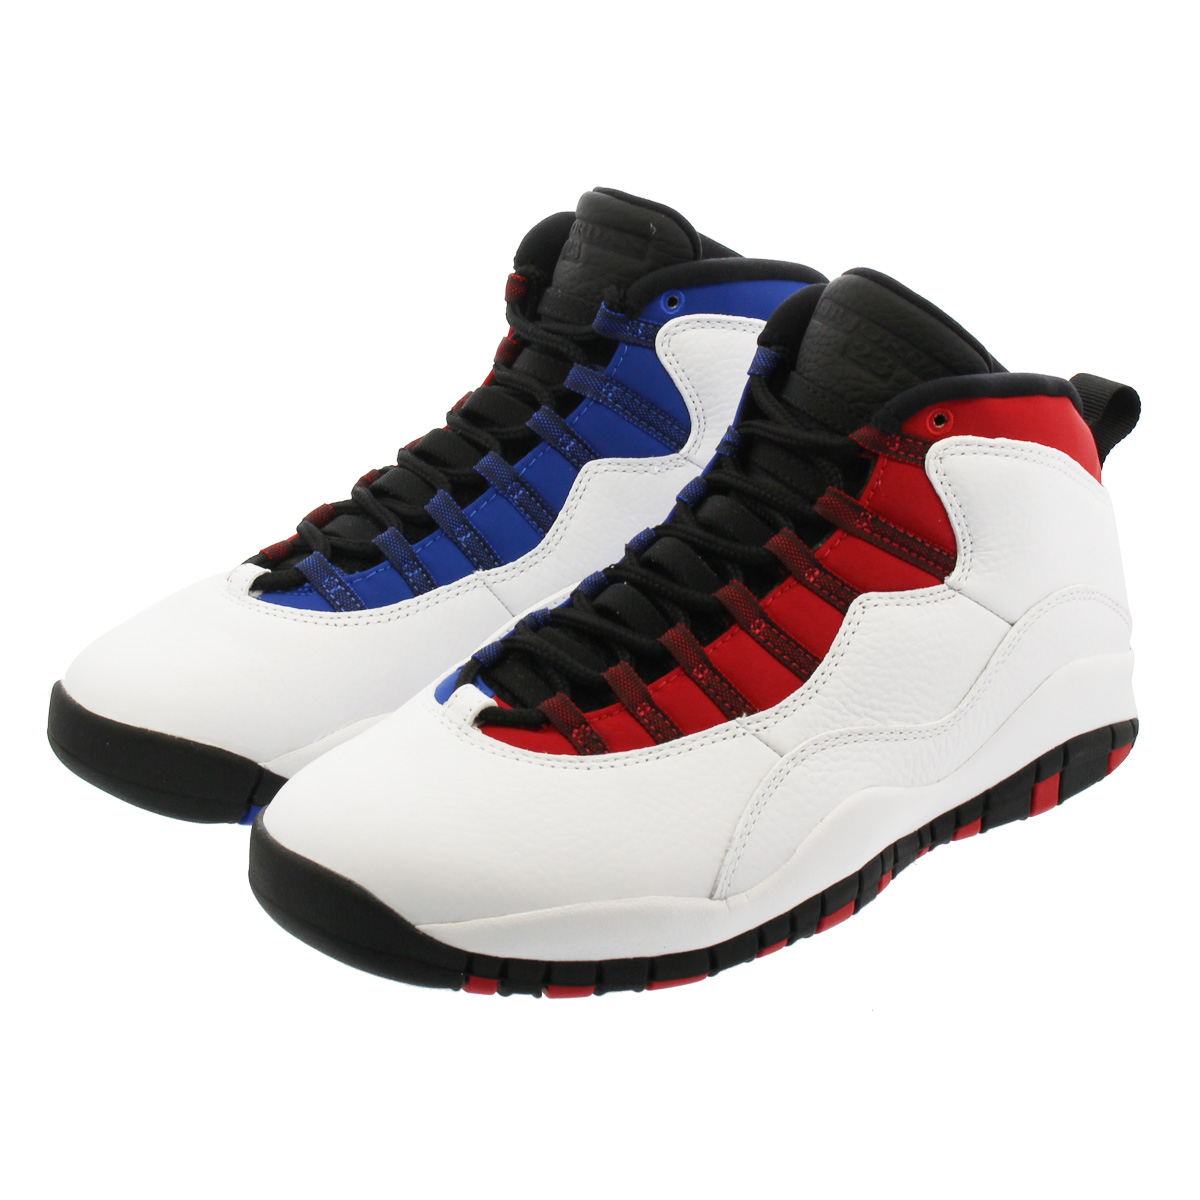 4ba6f9cc49 NIKE AIR JORDAN 10 RETRO Nike Air Jordan 10 nostalgic  WHITE/BLACK/UNIVERSITY RED/HYPER ROYAL 310,805-160